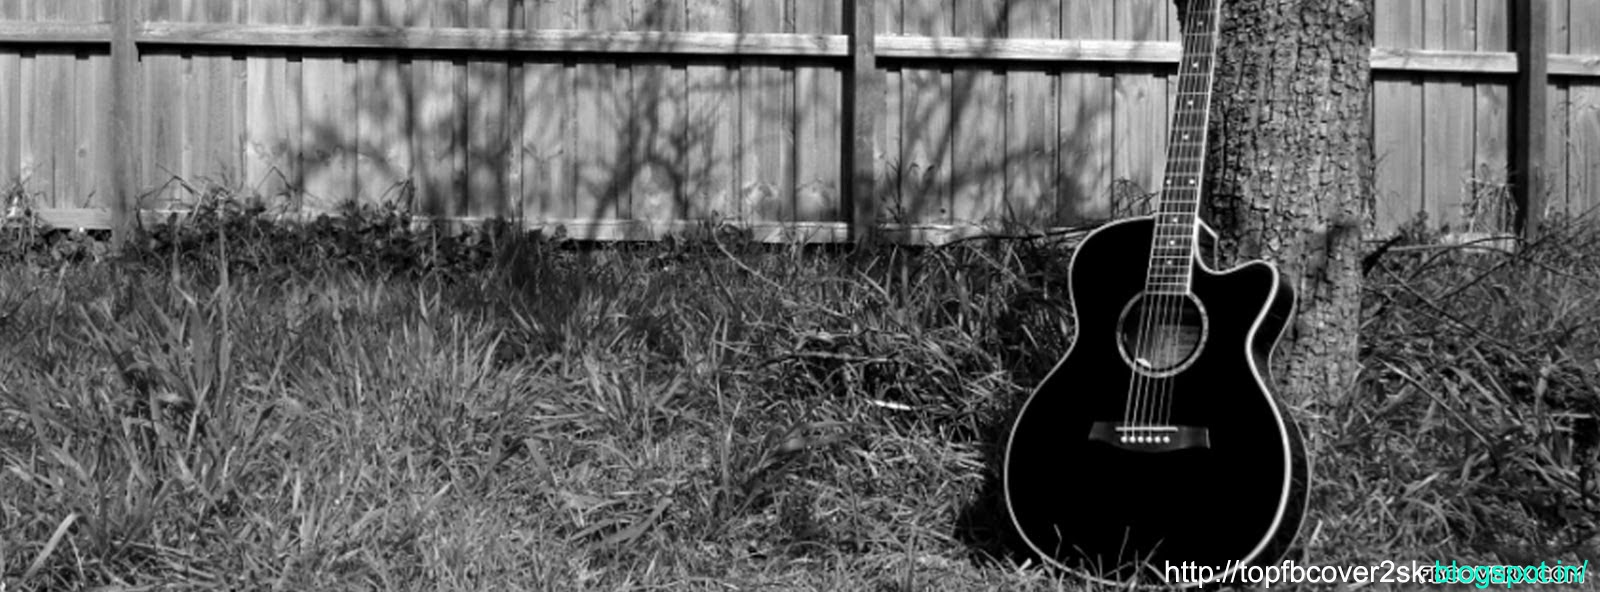 Guitter fb cover